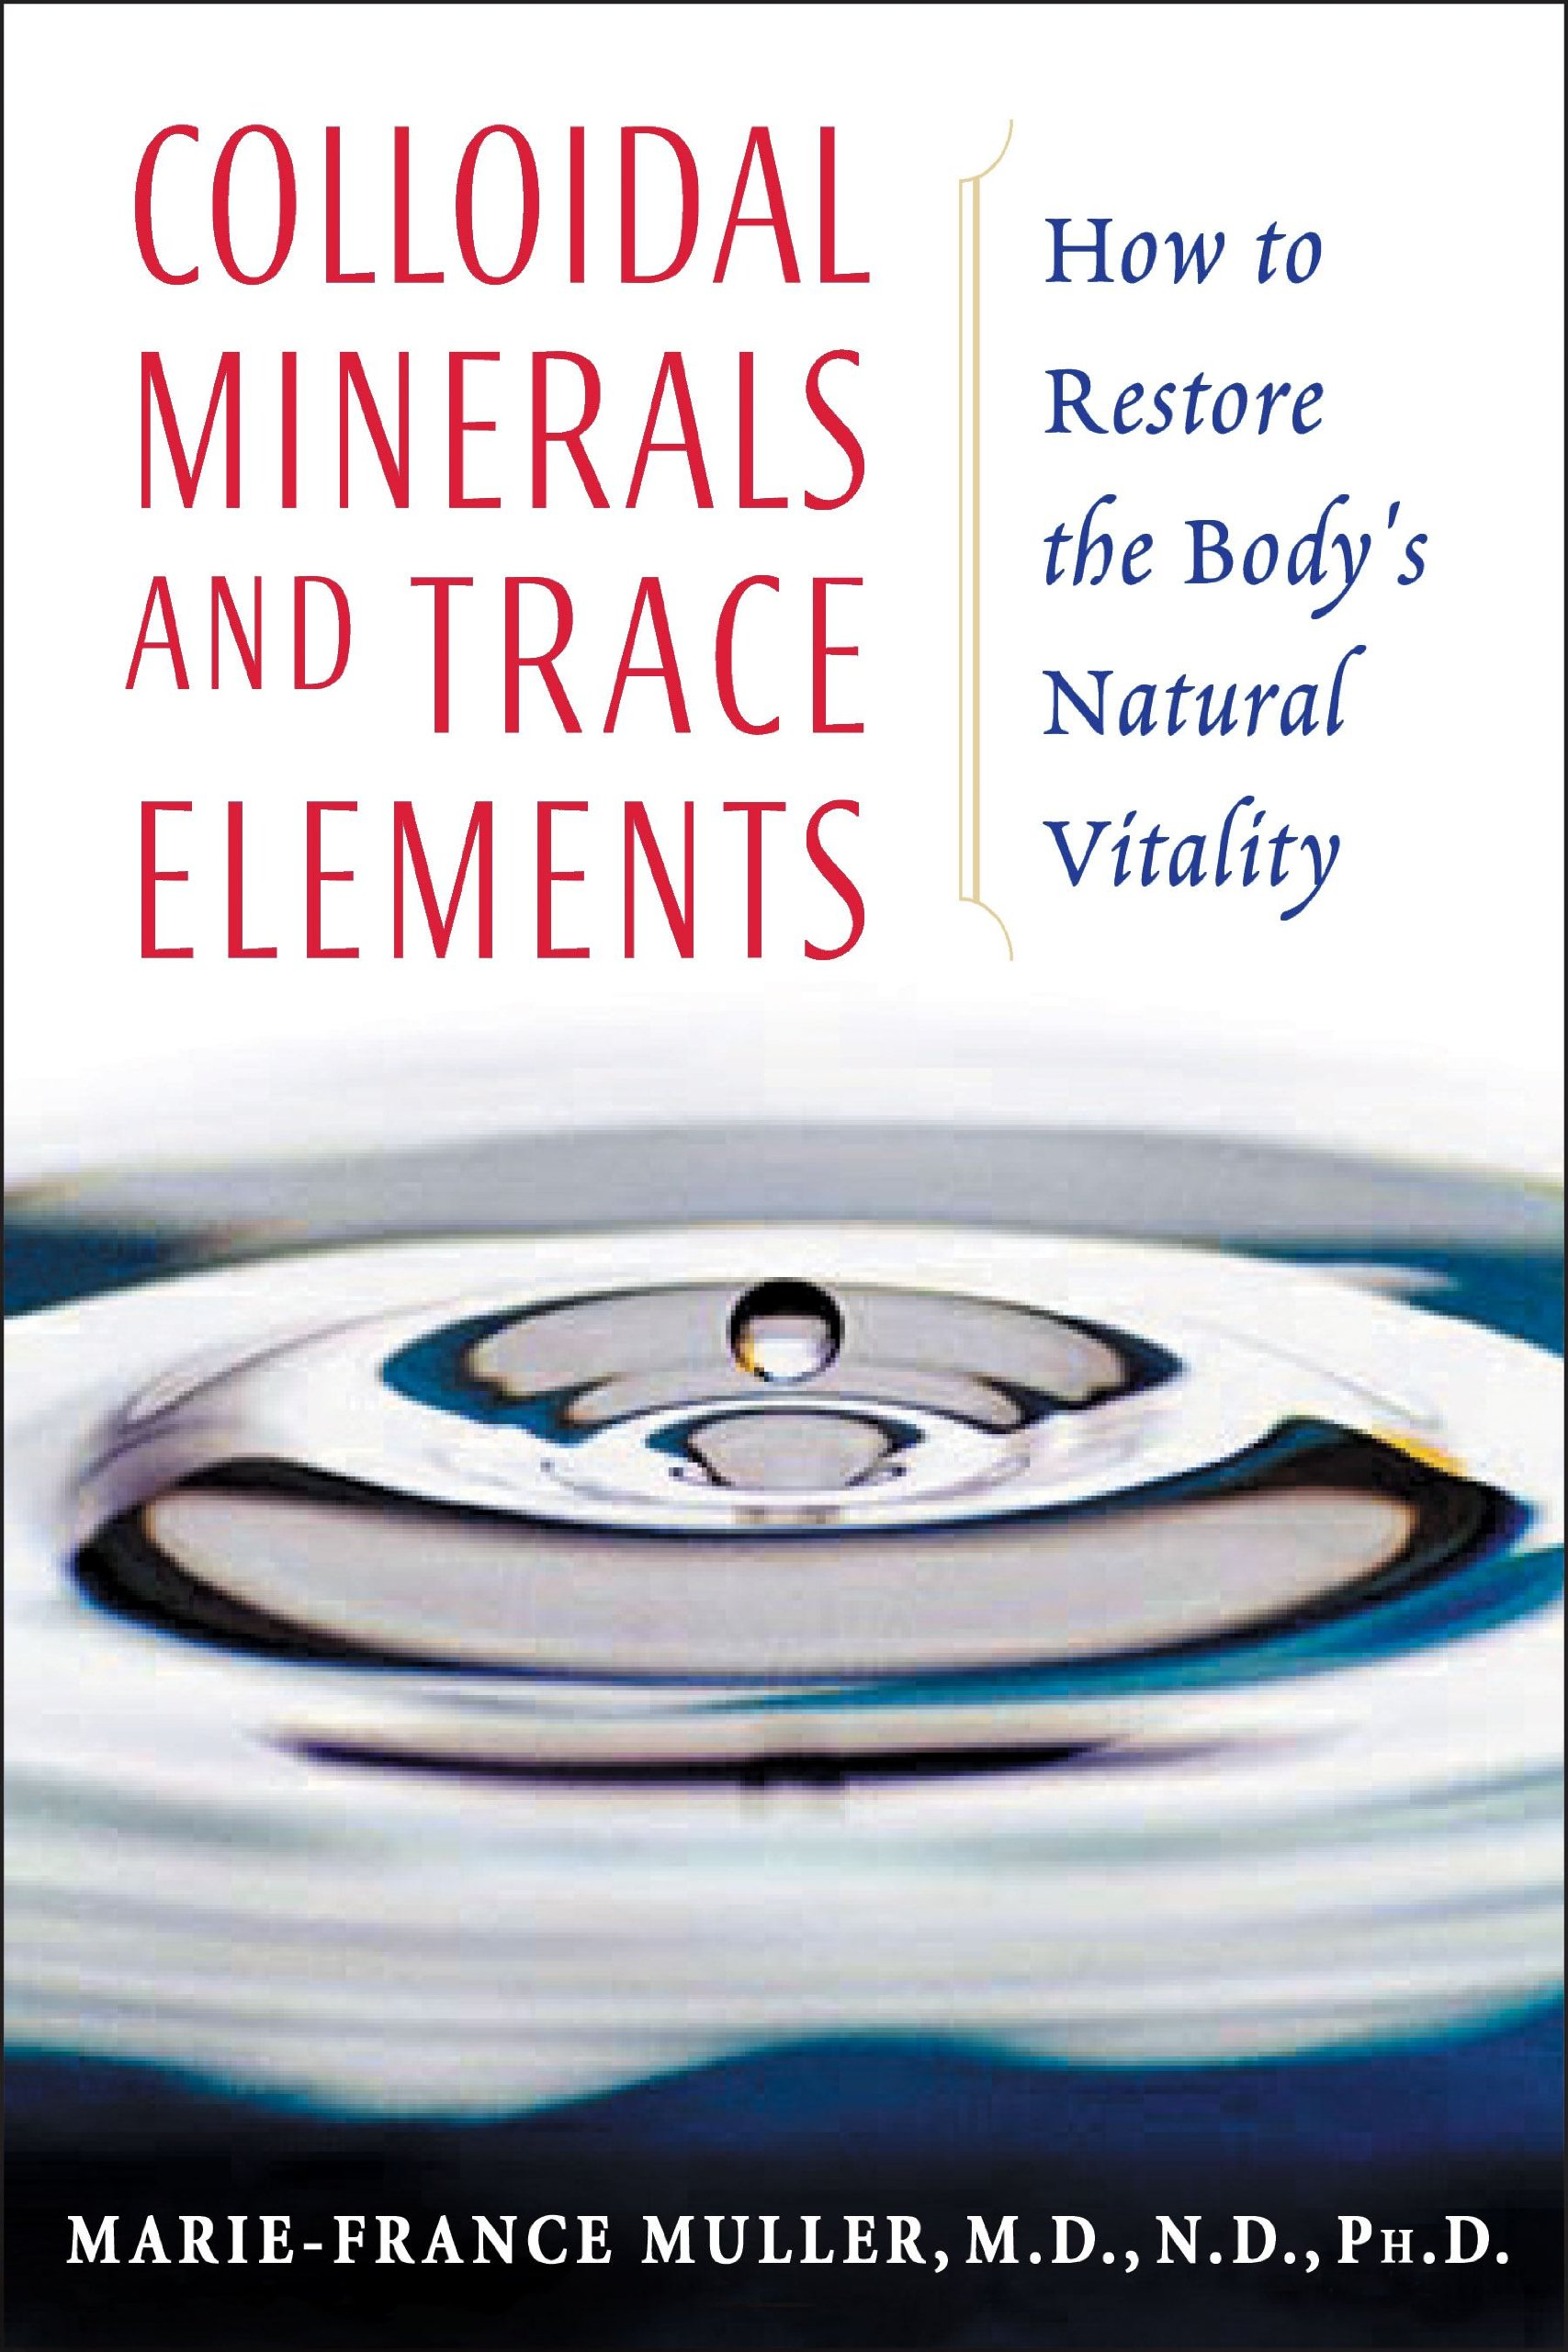 What does Dr. Joel Wallach say about colloidal minerals?